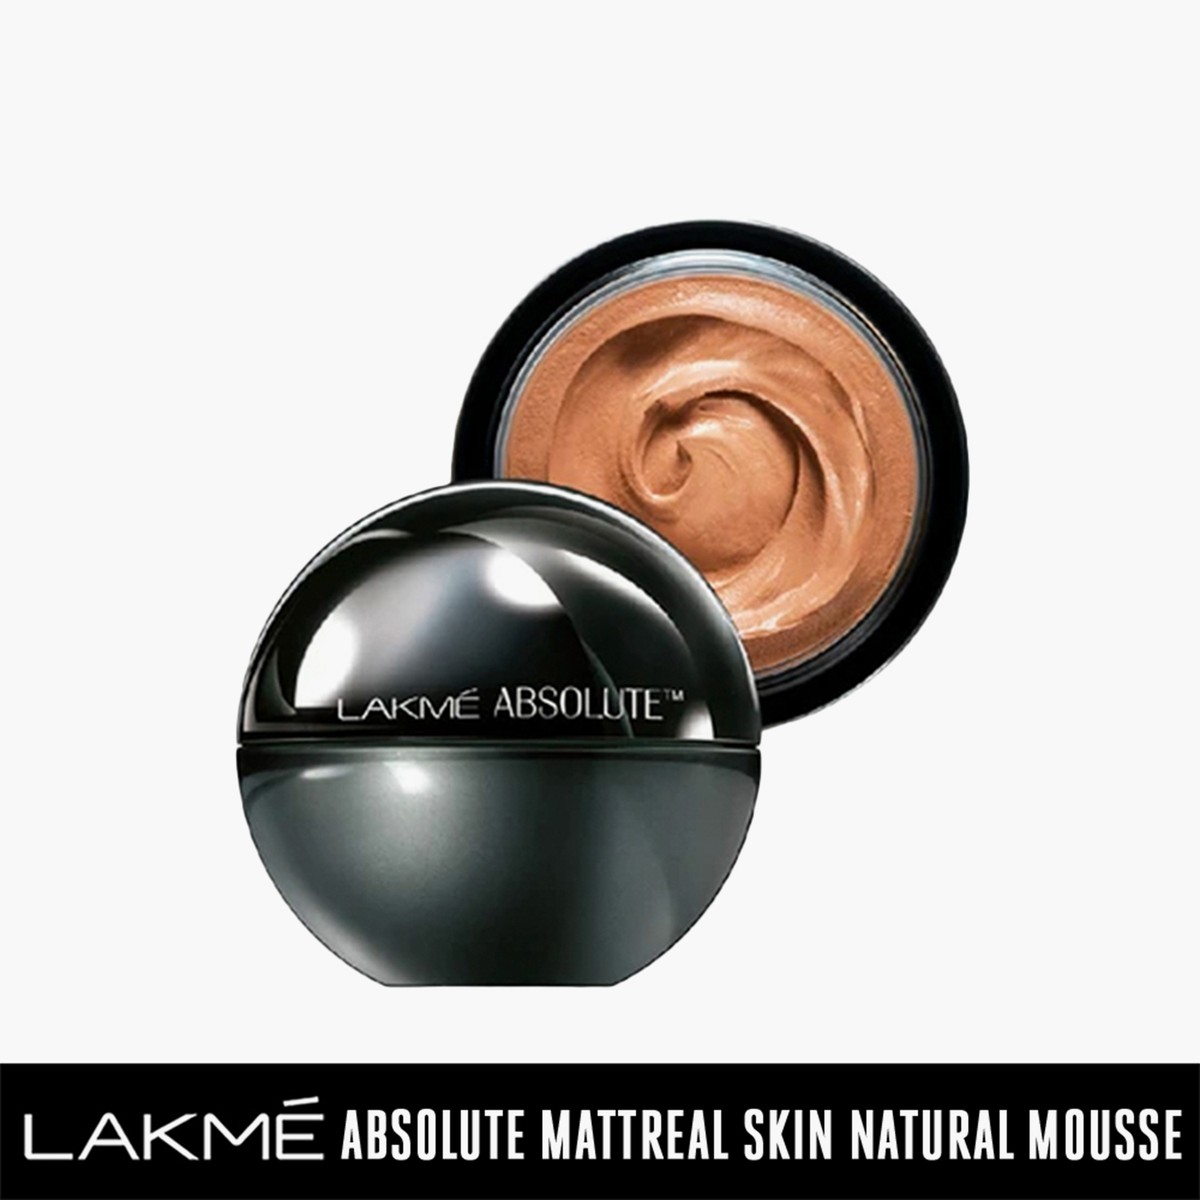 Lakme Absolute Foundation - 25g